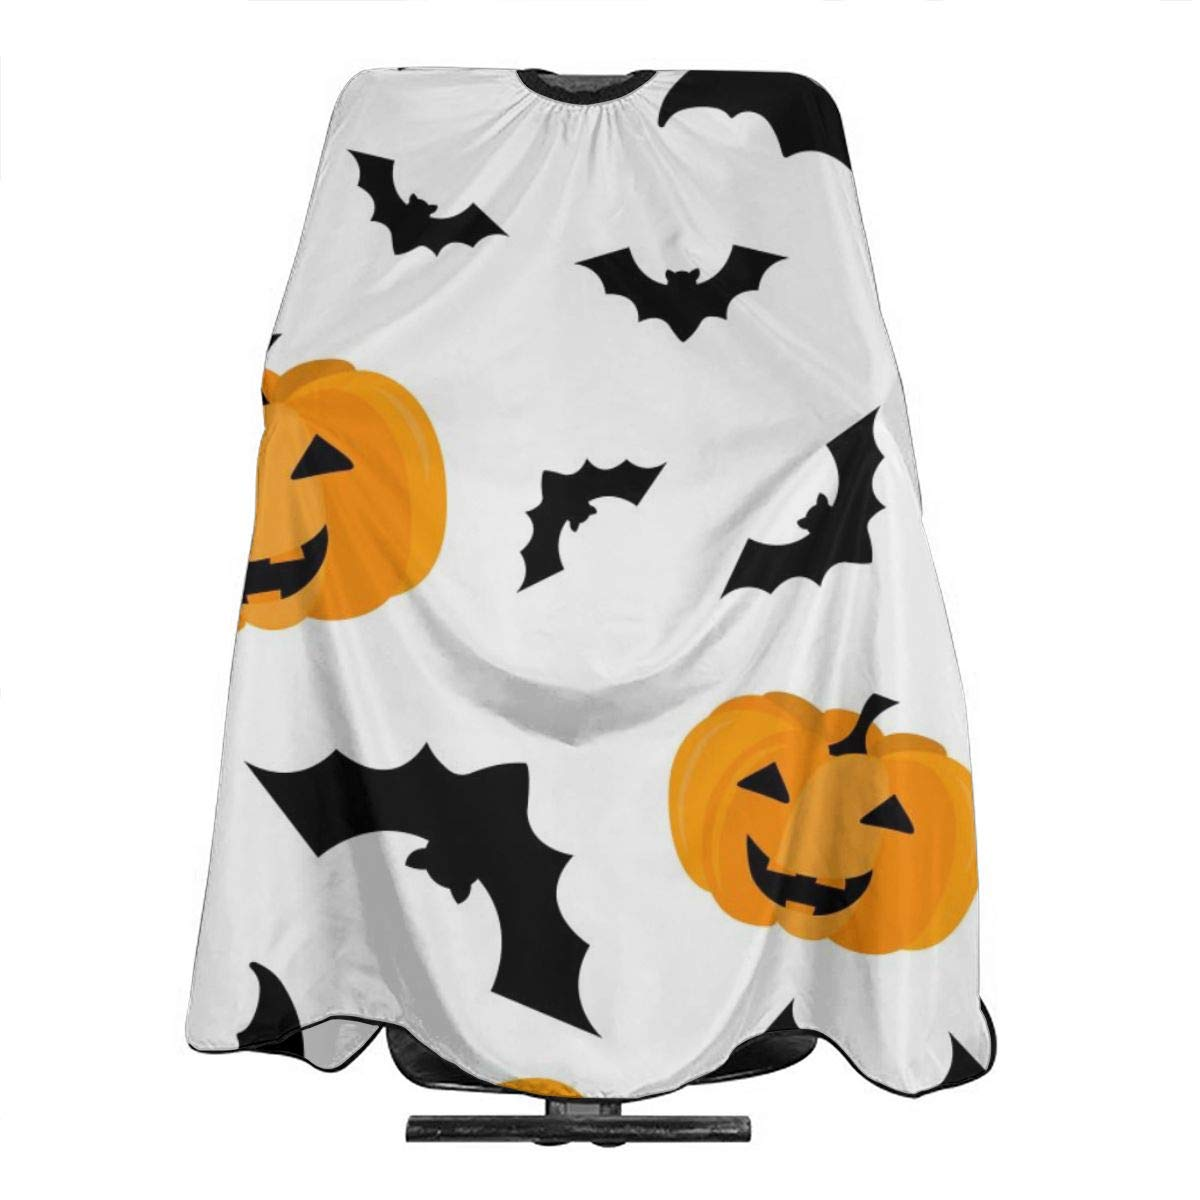 Professional Barber Cape Salon Hair Styling Cutting Haircut Aprons Halloween Pumpkin Bats Capes For Proof Hairdresser Coloring Perming Shampoo Chemical 55